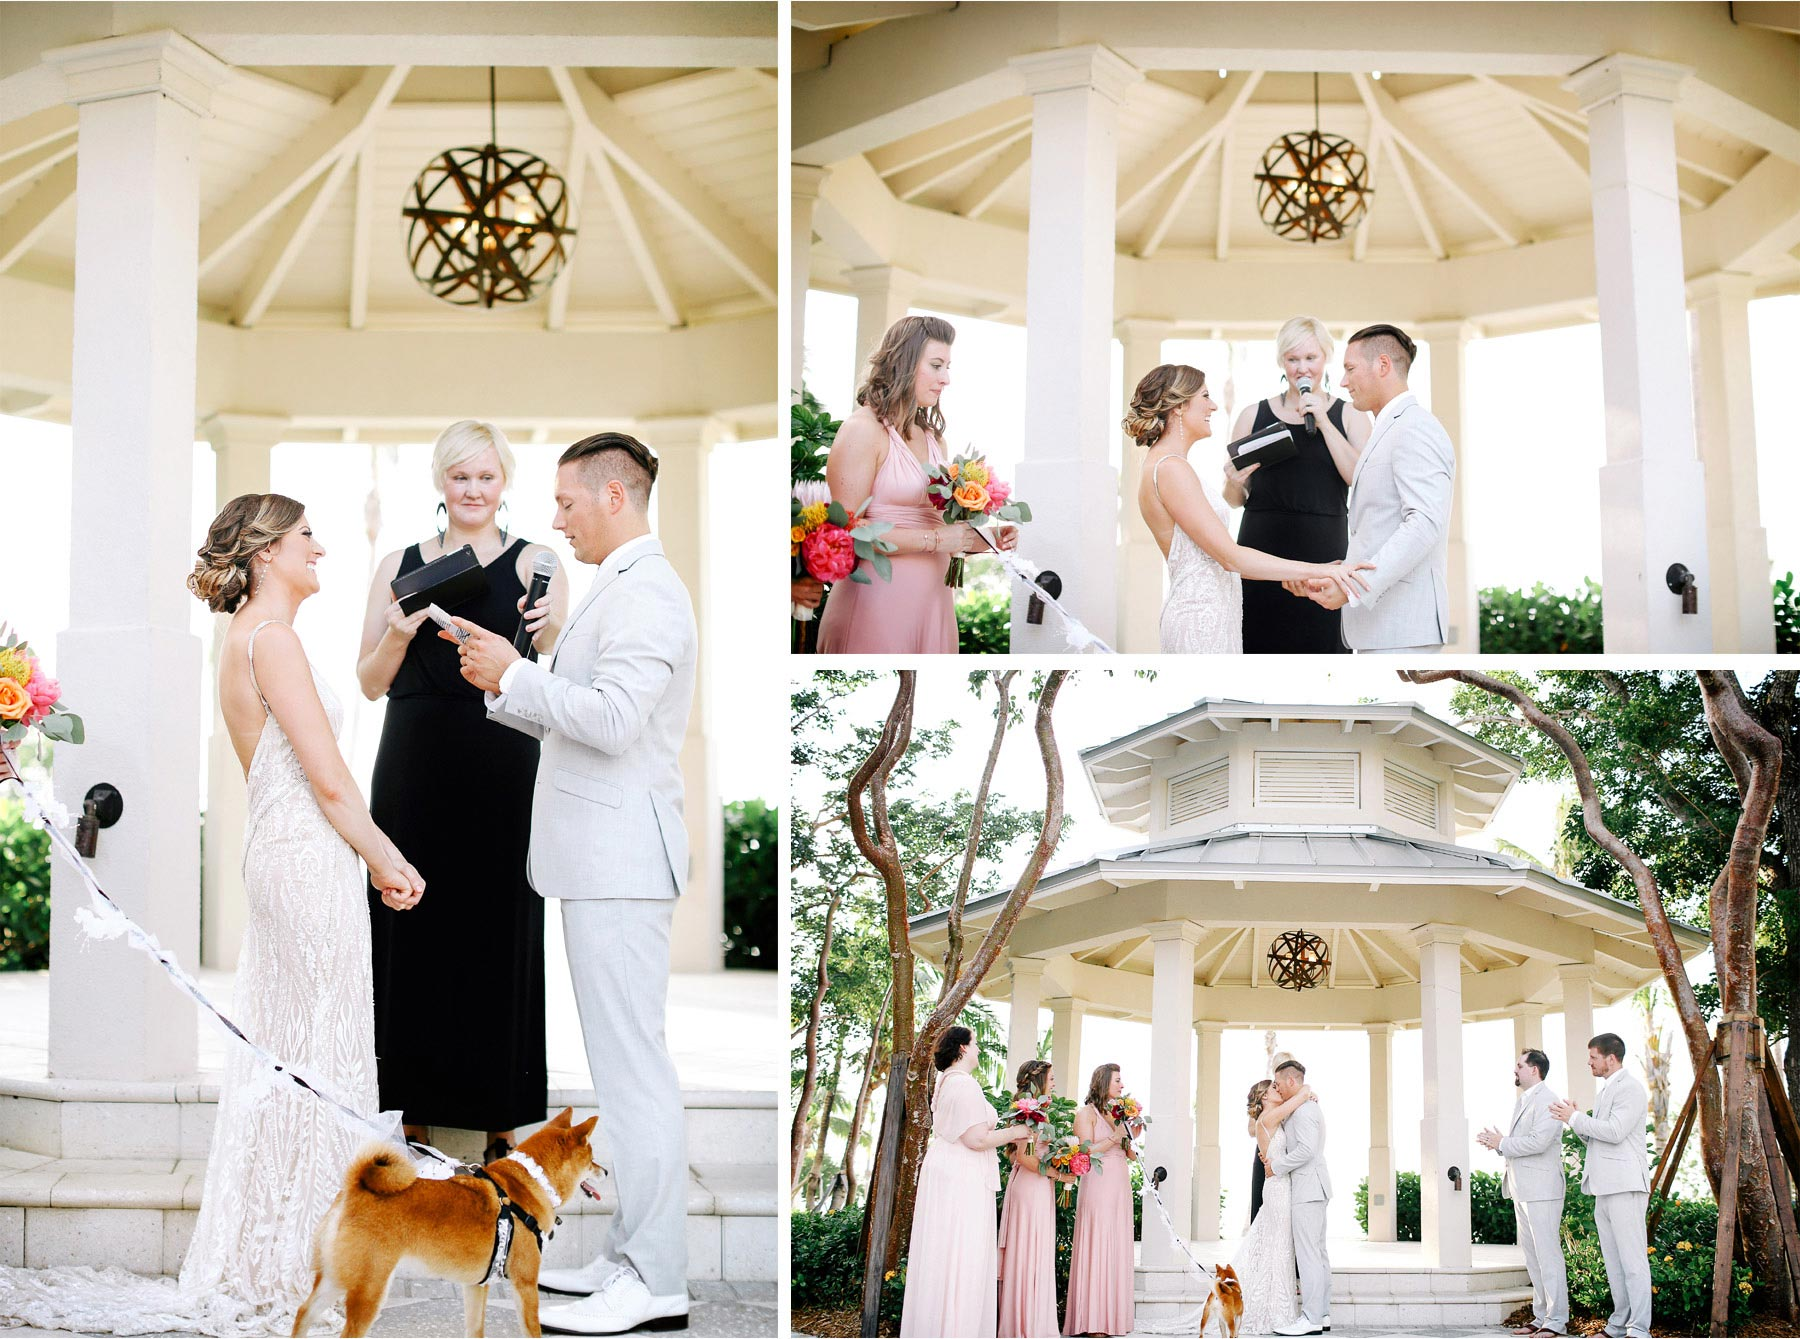 14-Key-Largo-Florida-Keys-Wedding-Photographer-by-Andrew-Vick-Photography-Playa-Largo-Resort-and-Spa-Hotel-Destination-Winter-Ceremony-Bride-Groom-Dog-Vows-Kiss-Carrie-and-Brian.jpg